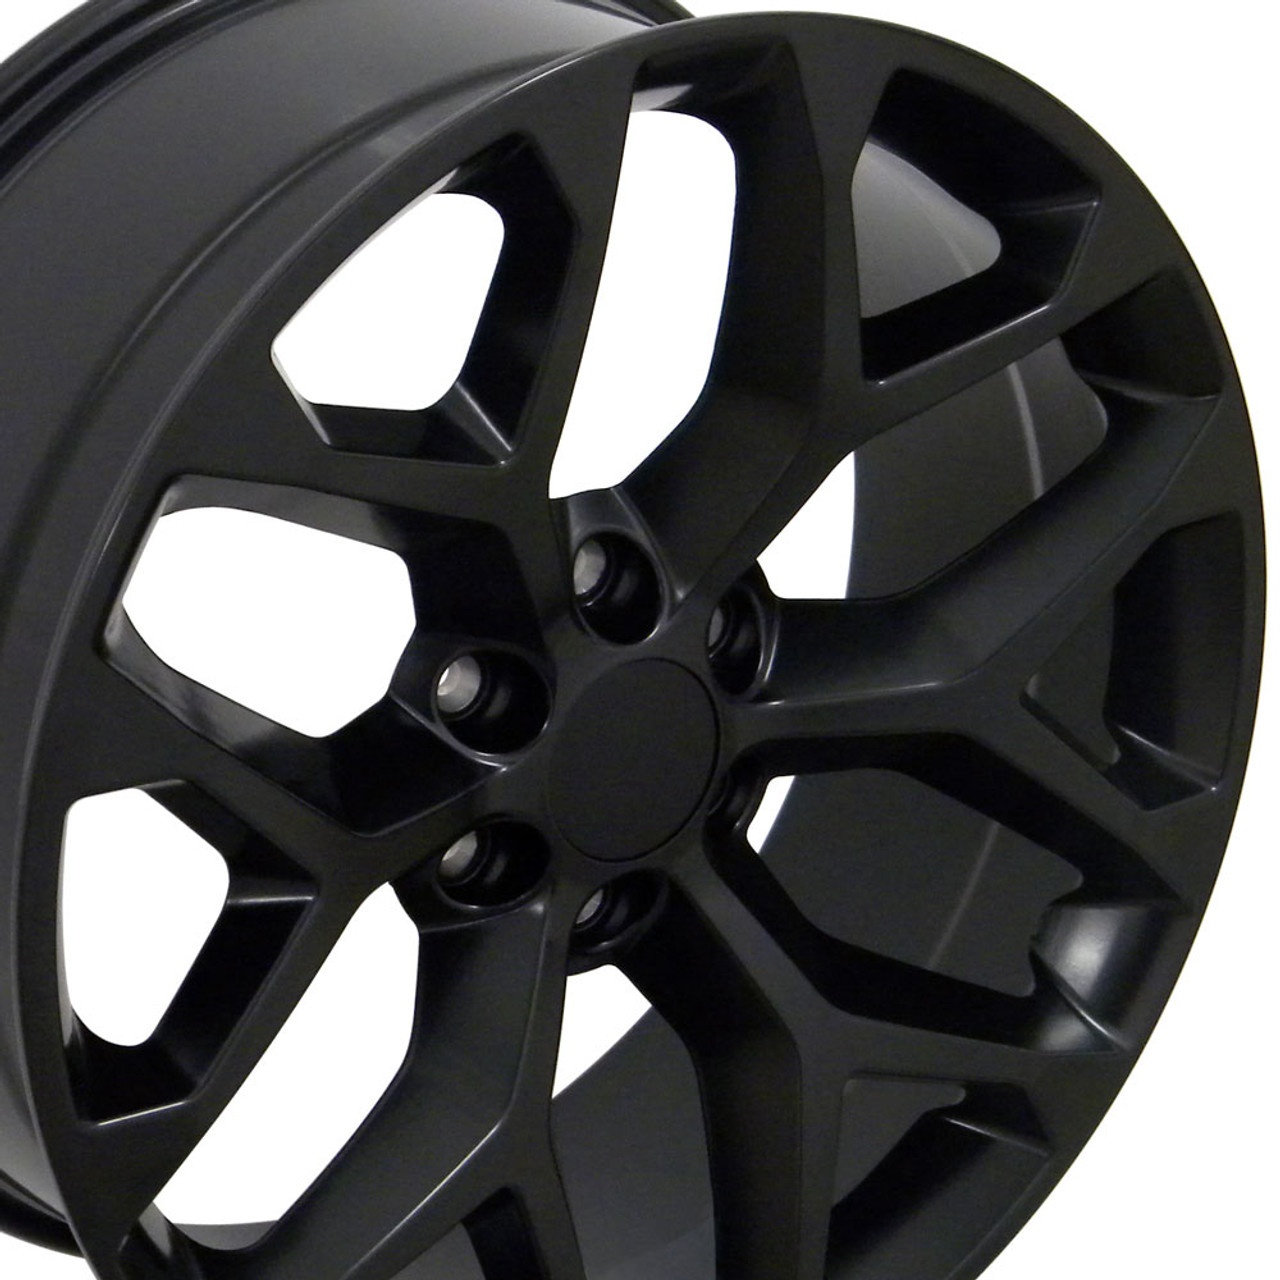 All Chevy black chevy rims : 20